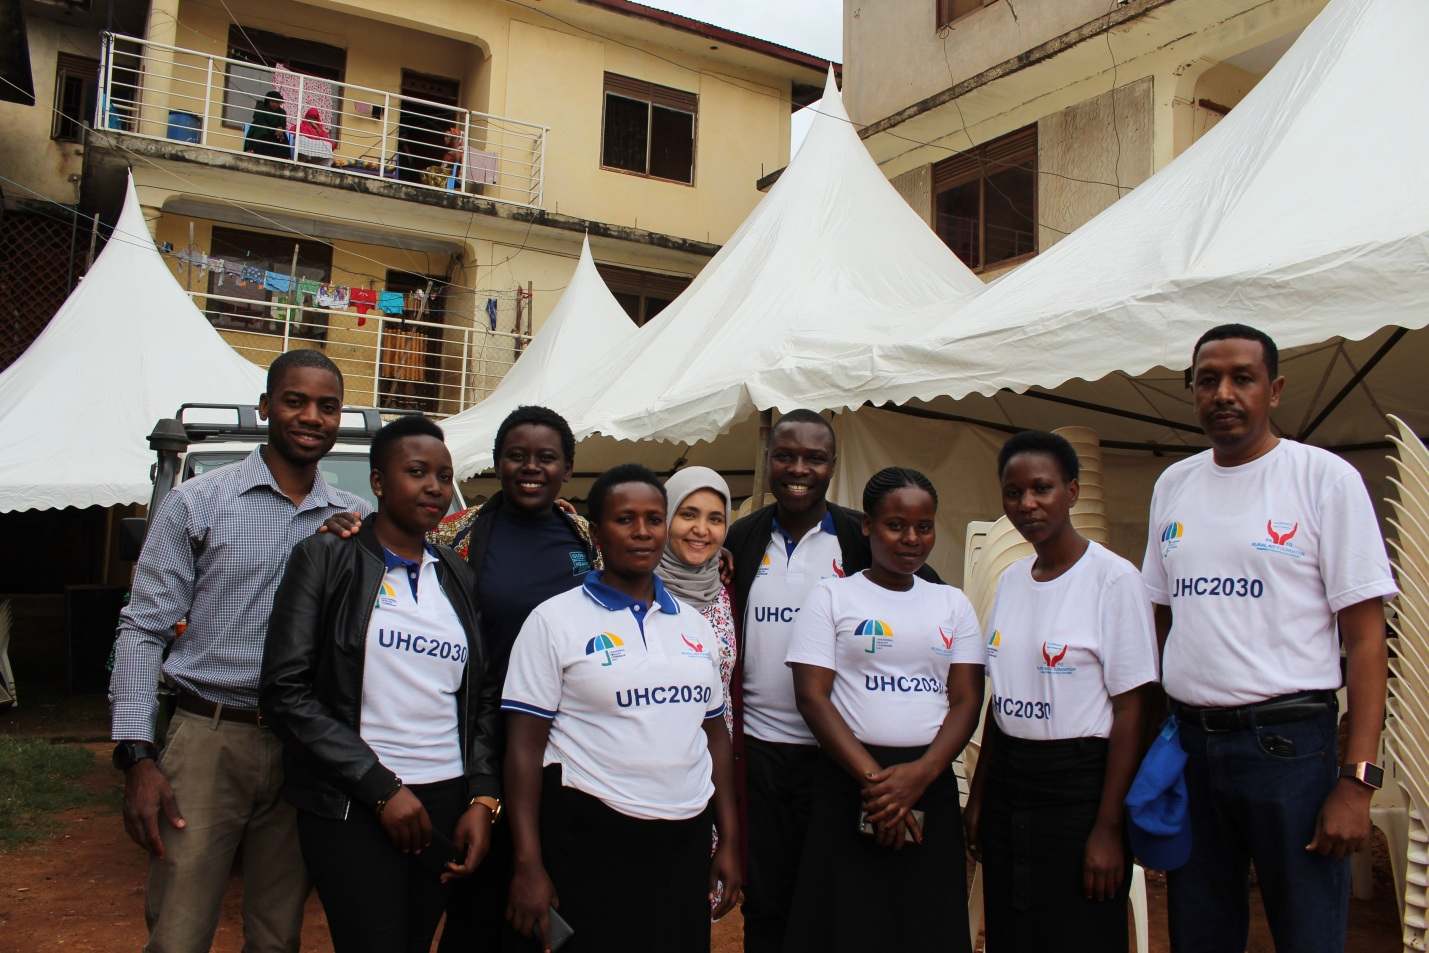 Rural Aid Foundation and partners at the international universal health coverage day 2018 focusing on refugee health needs